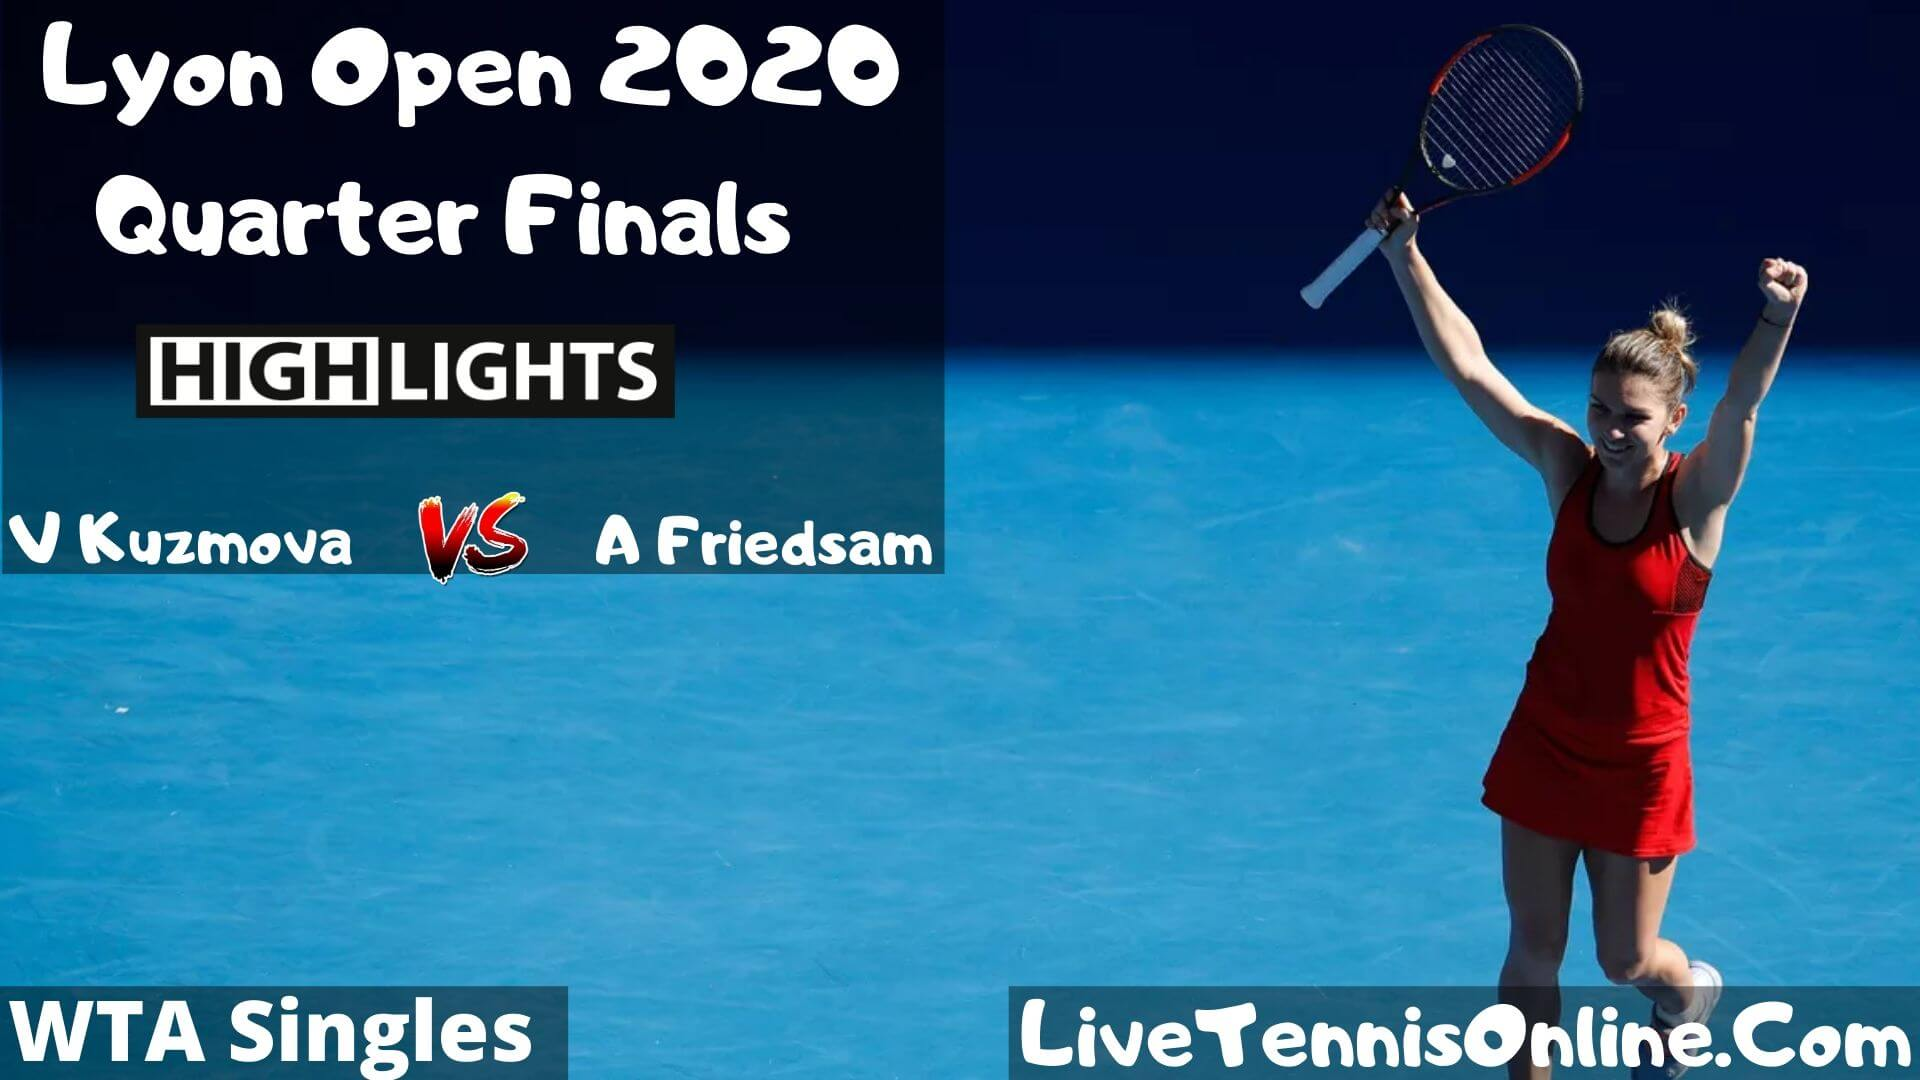 V Kuzmova Vs A Friedsam Highlights 2020 QF Lyon Open